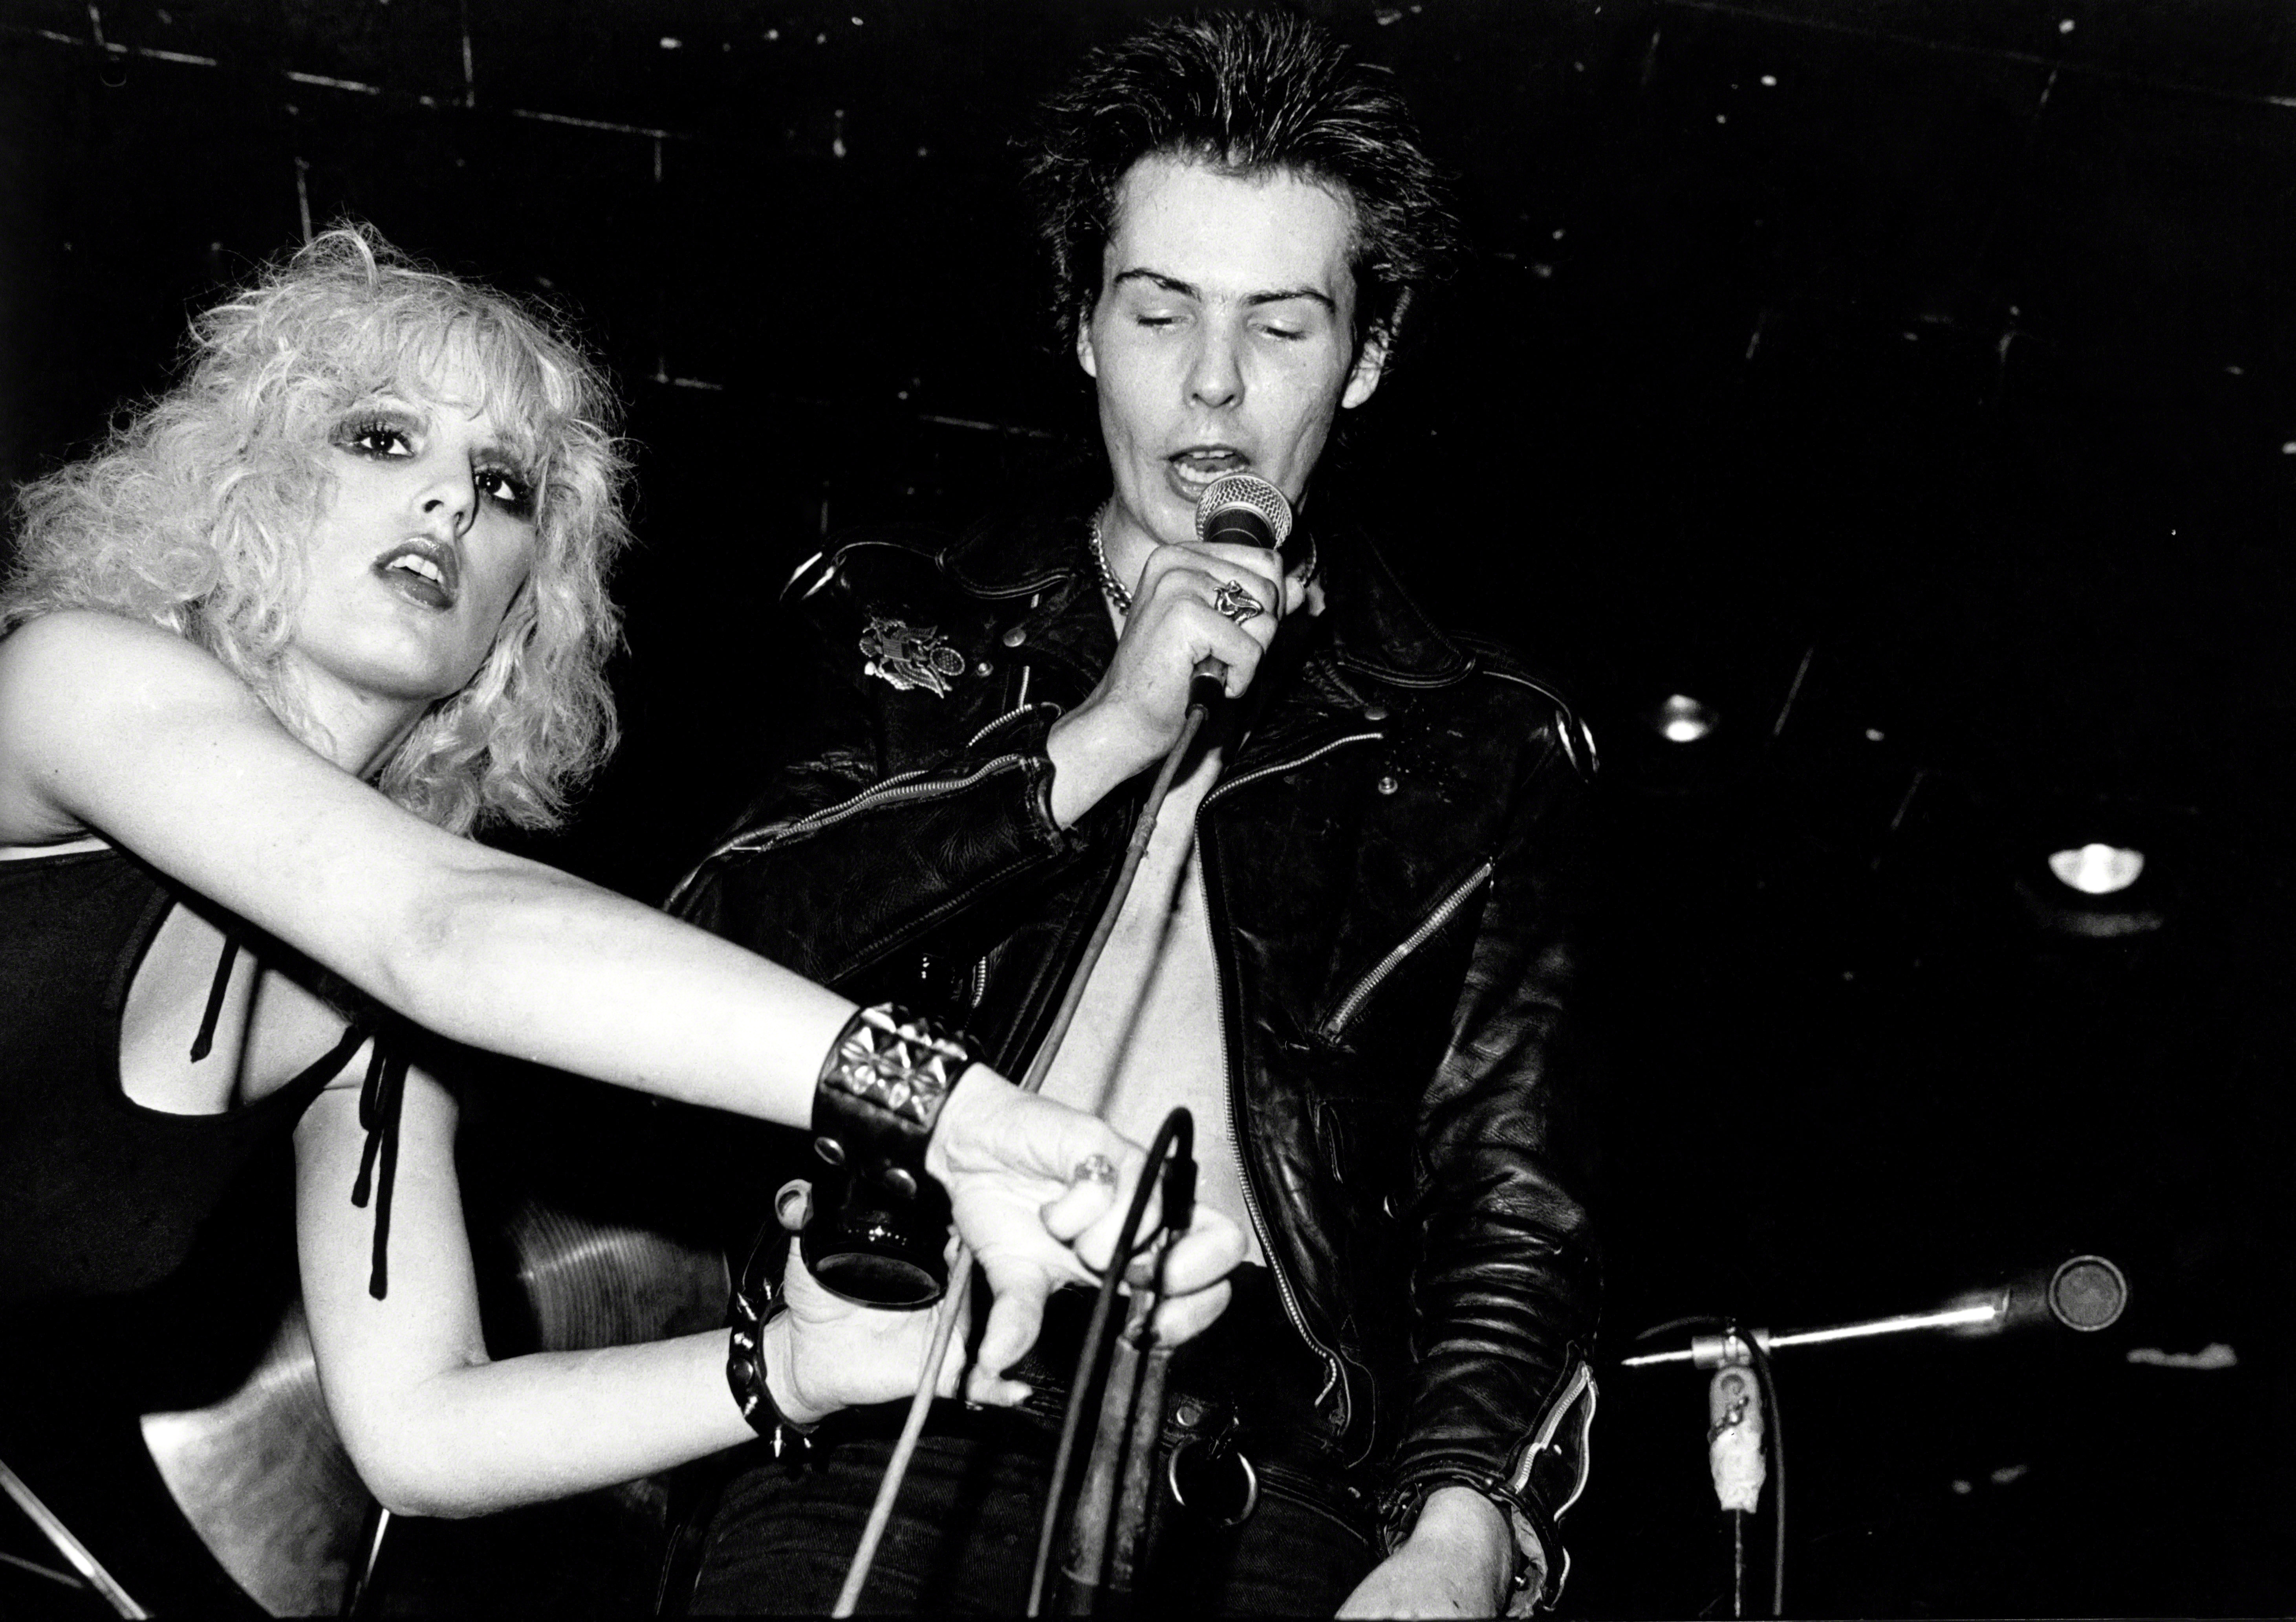 Nancy Spungen Found Dead, Sid Vicious Charged with Murder